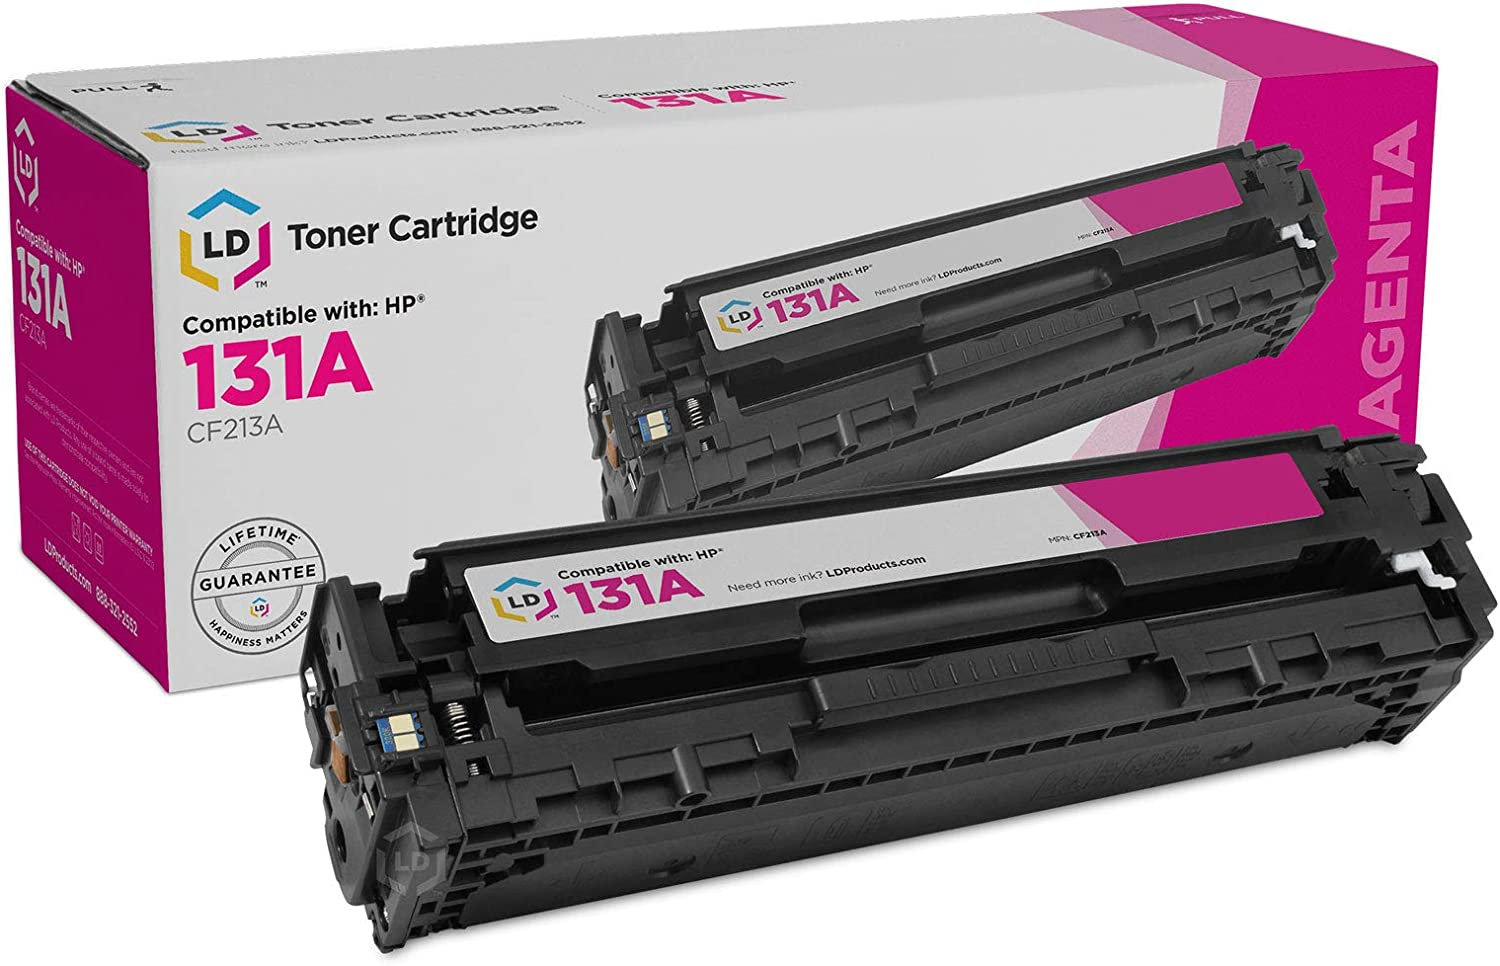 LD Remanufactured Toner Cartridge Replacement for HP 131A CF213A (Magenta)